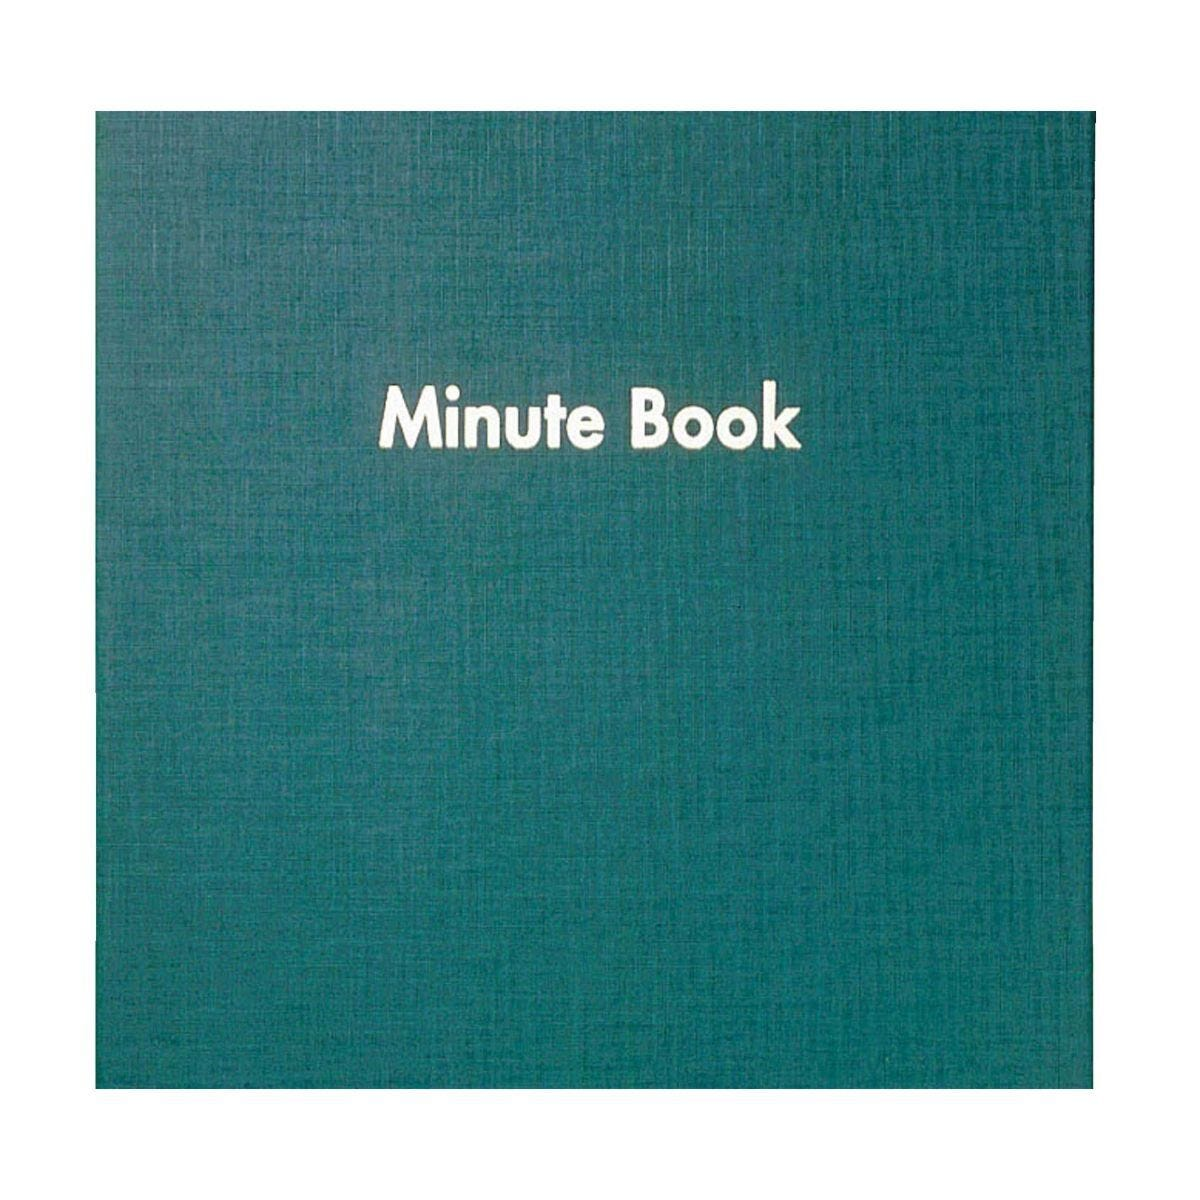 Minute Book Bound 80 Sheets 160 Pages